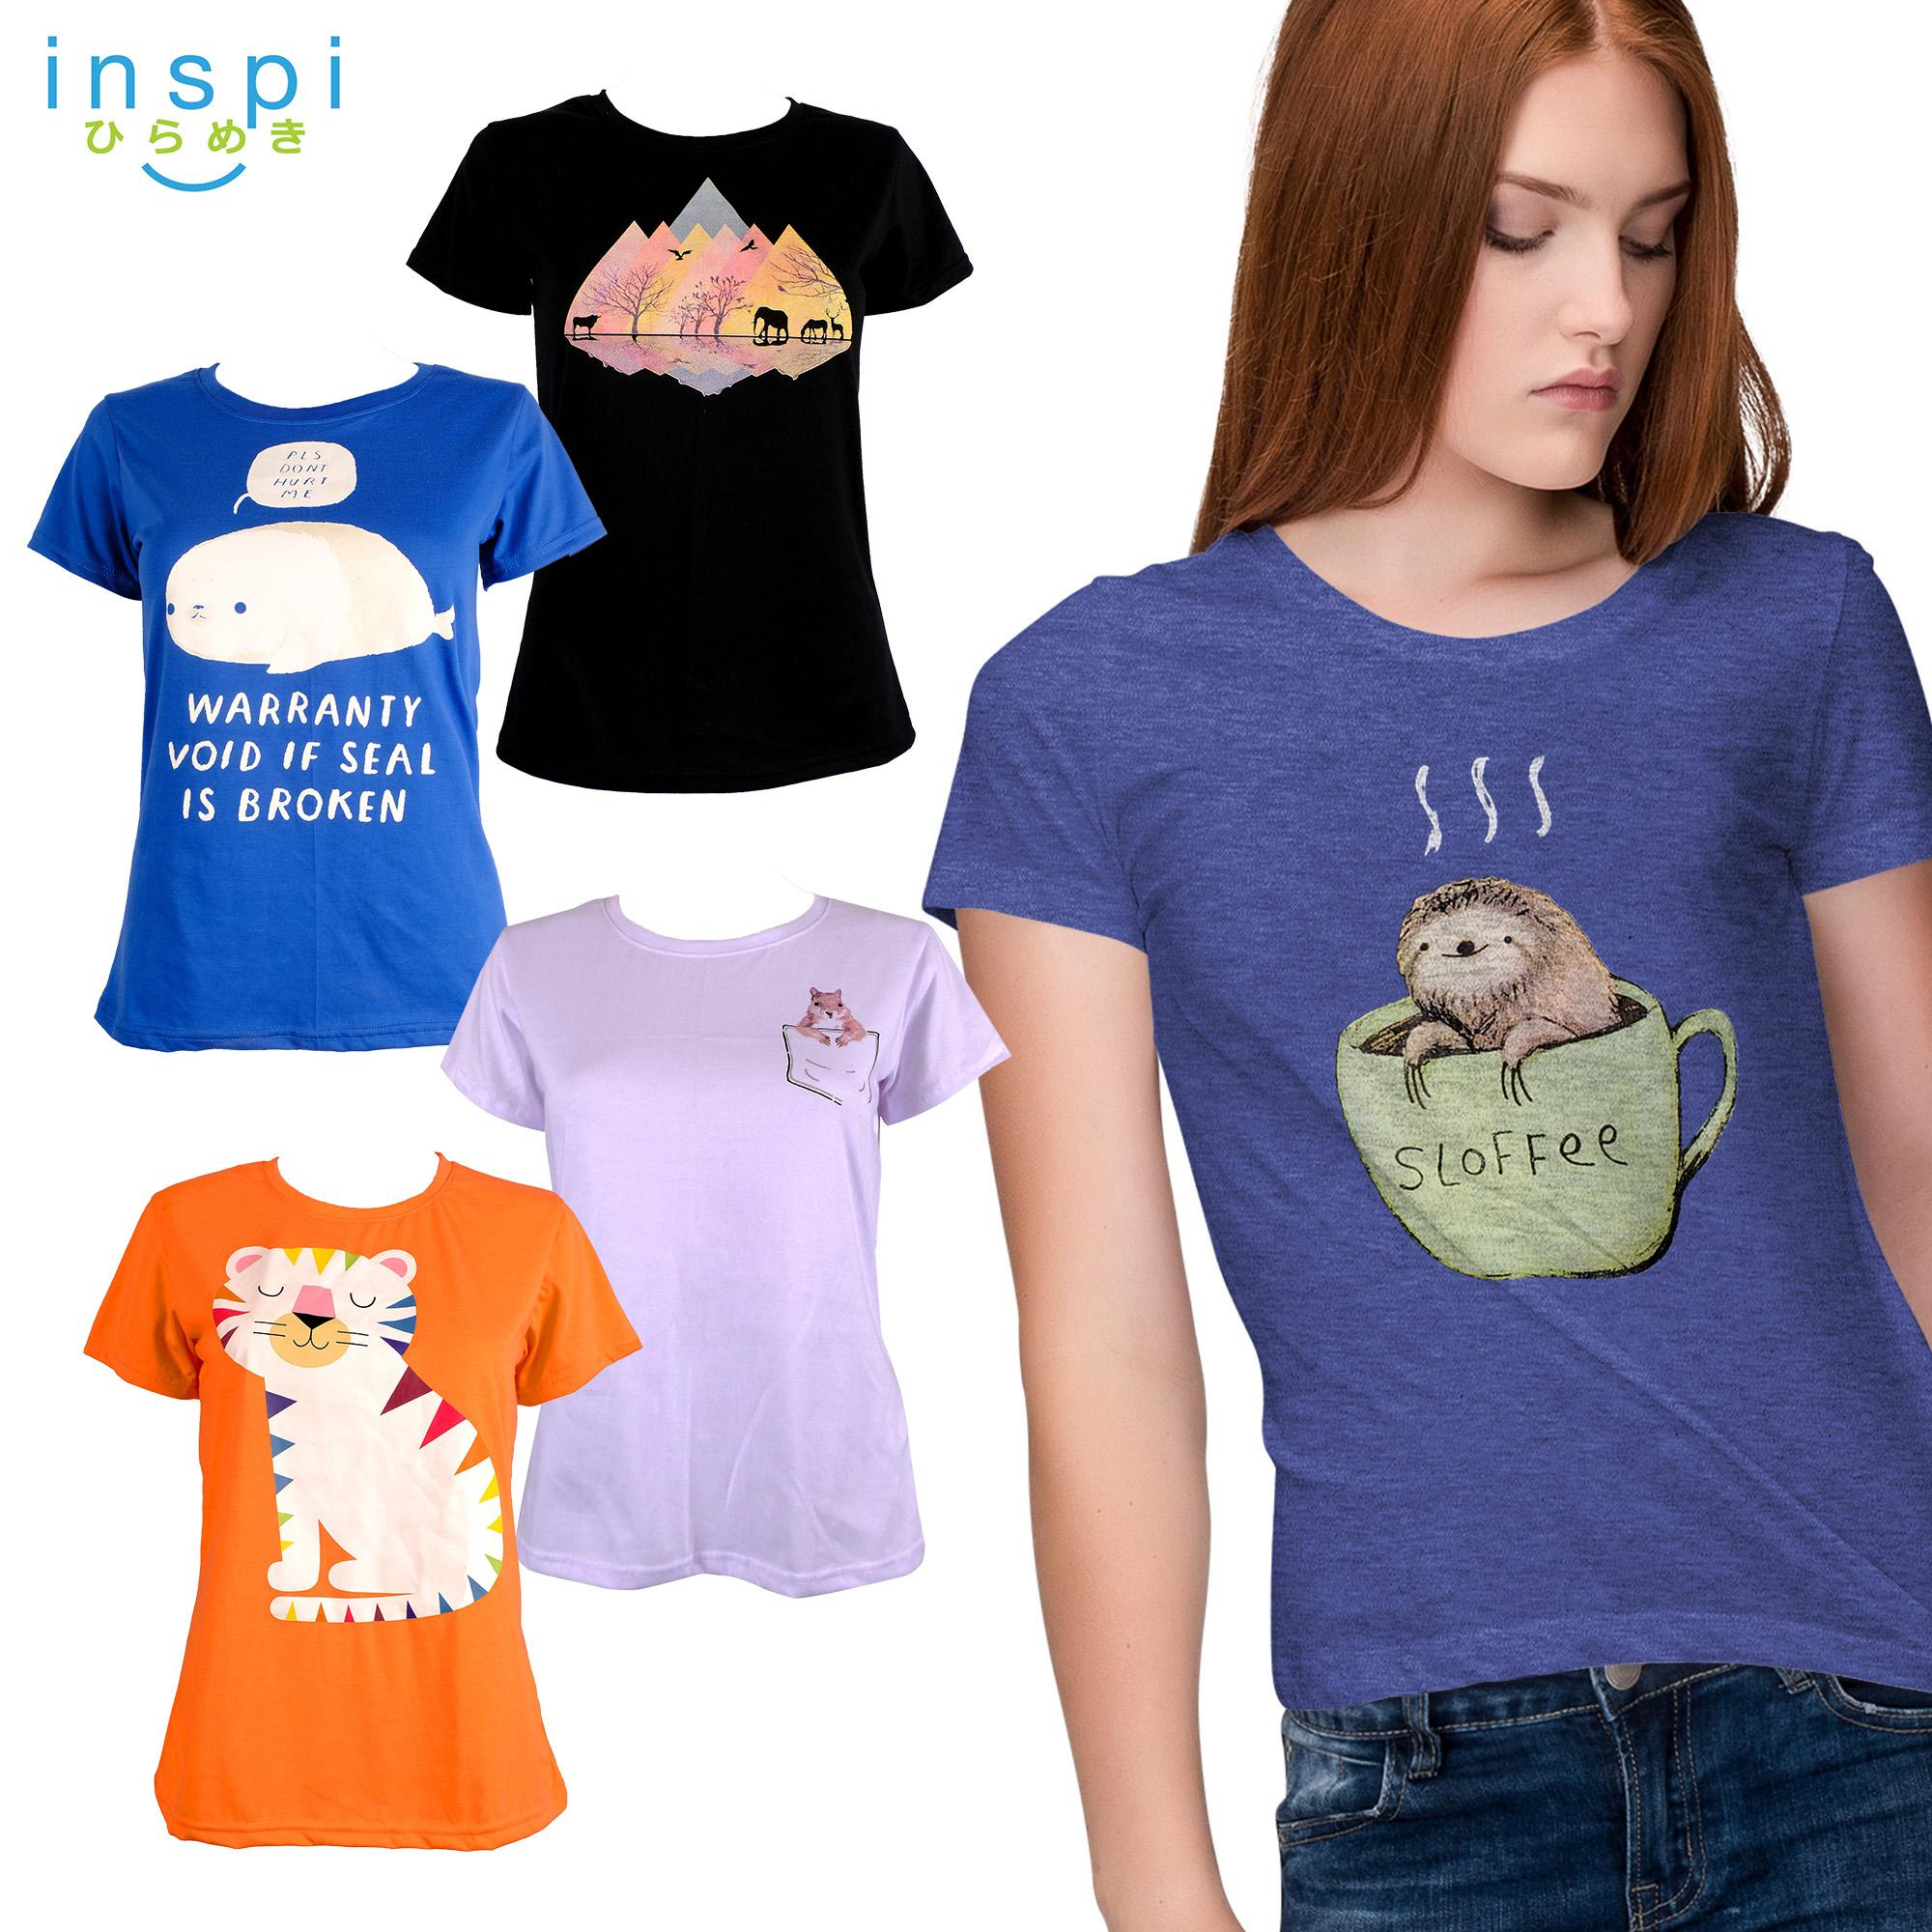 585dda2bfcb INSPI Tees Ladies Pet Collection tshirt printed graphic tee Ladies t shirt  shirts women tshirts for